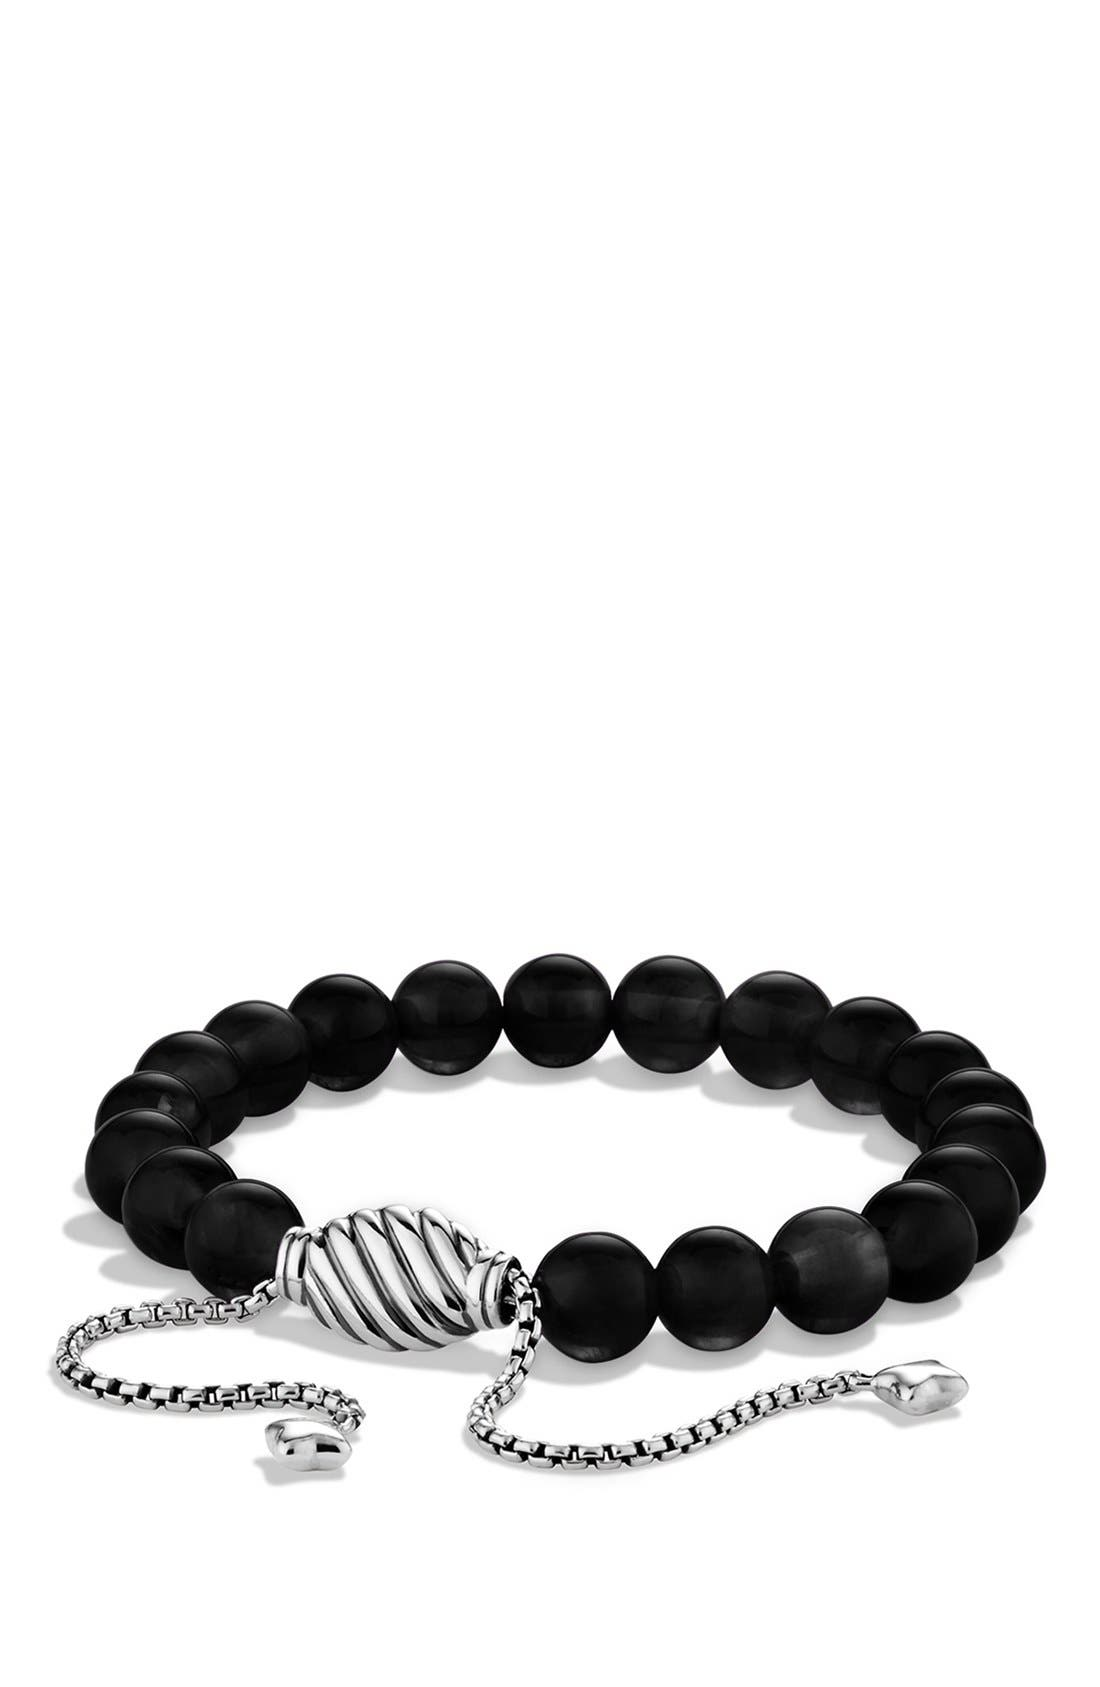 Alternate Image 1 Selected - David Yurman 'Spiritual Beads' Bracelet